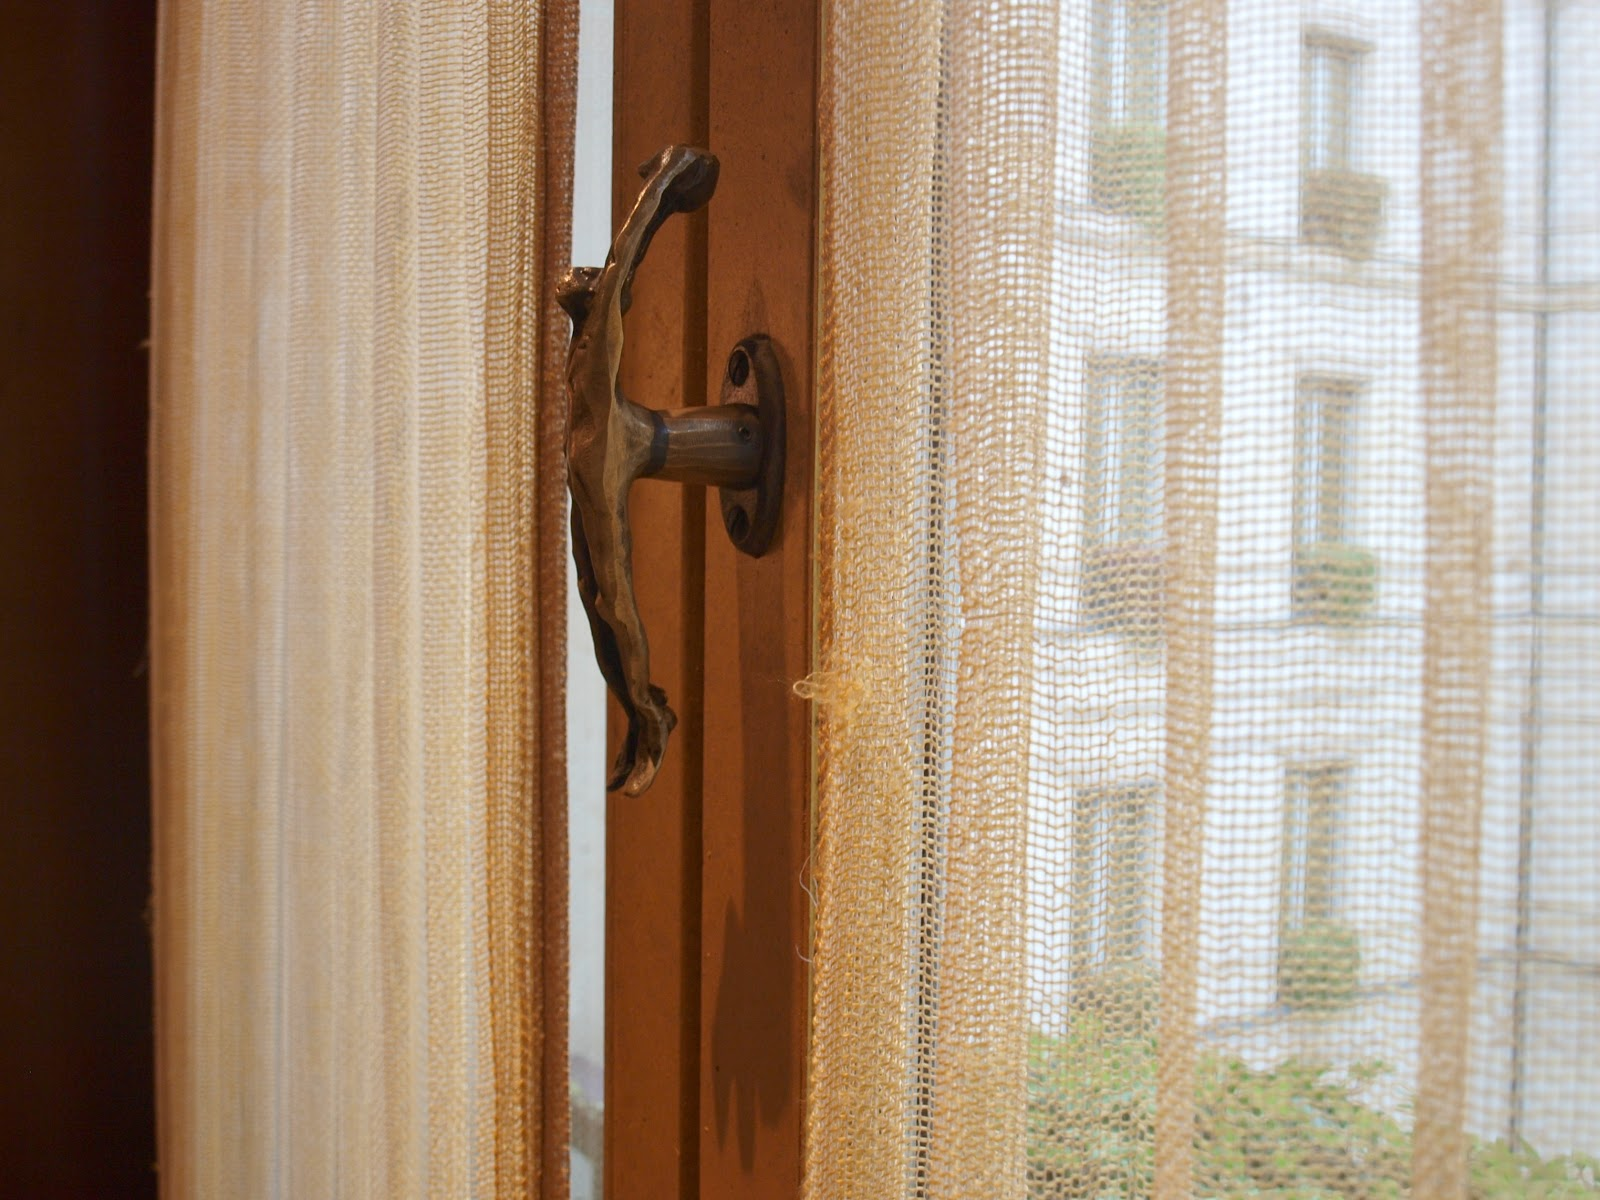 Detail of French window and Rosaline Granet hardware in suite at Park Hyatt Paris by Hello Lovely Studio